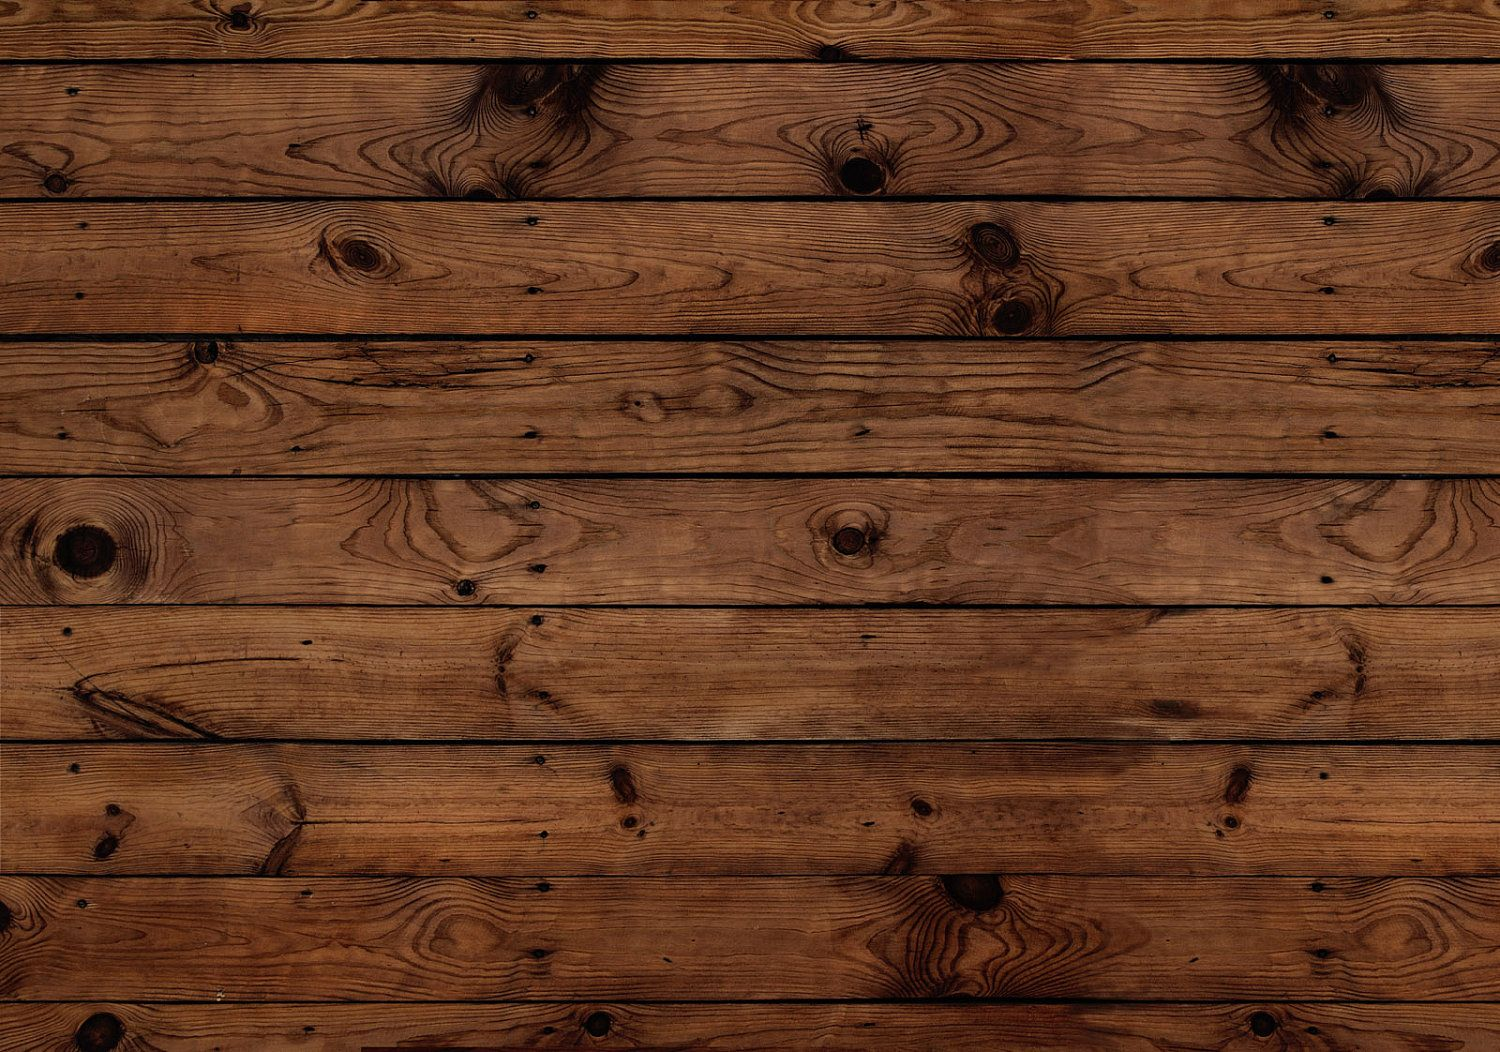 Darkwood plank faux wood rug flooring background or by for What is faux wood